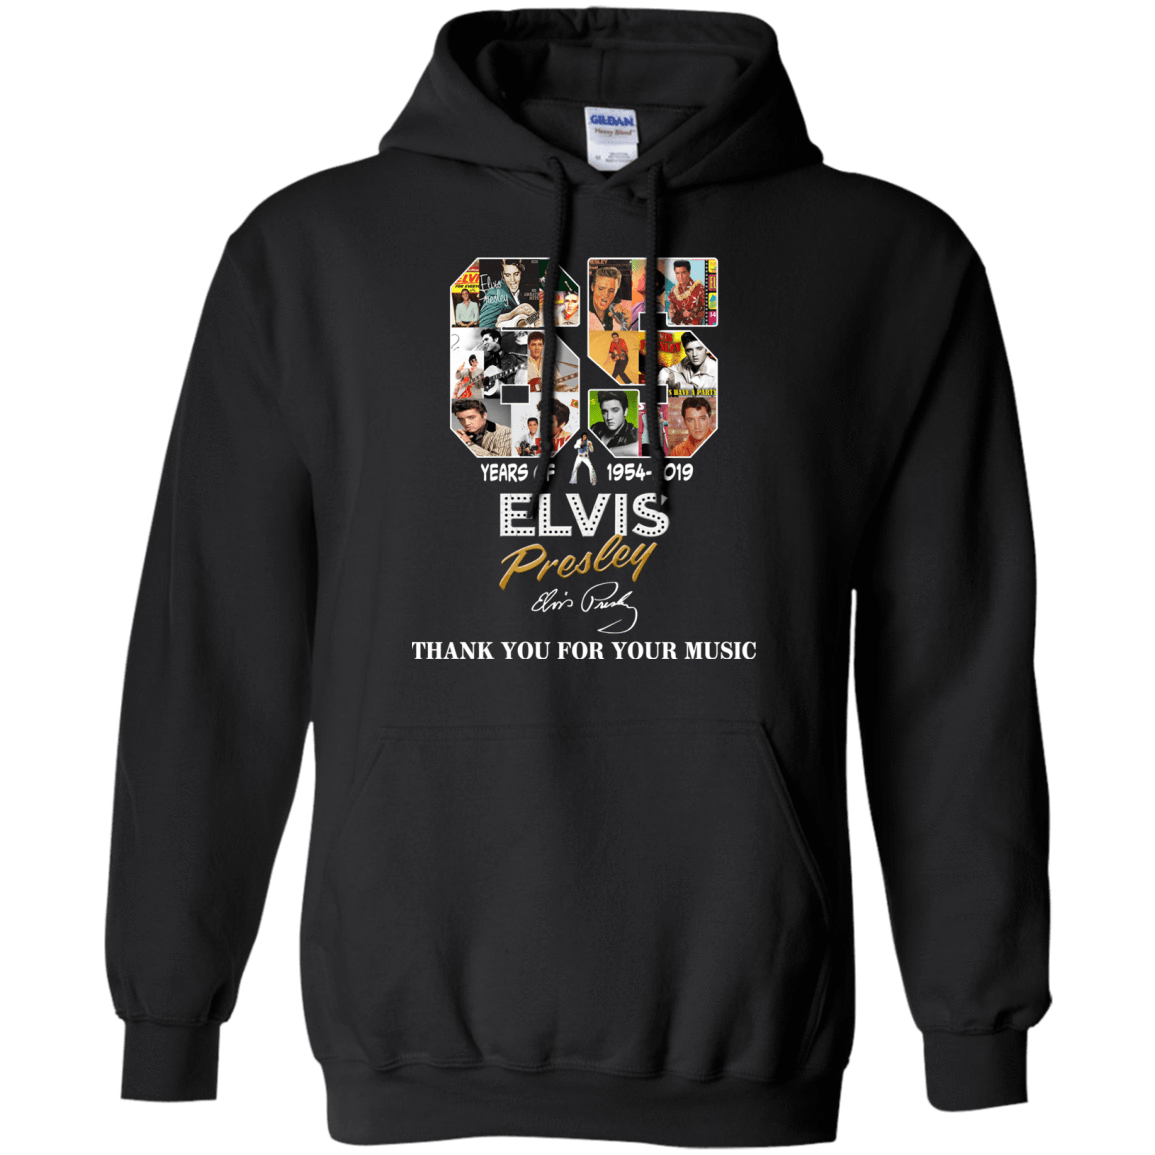 65 Years Of Elvis Presley 1954 2019 Thank You For Your Music T-Shirts, Hoodie, Tank 541-4740-78230017-23087 - Tee Ript